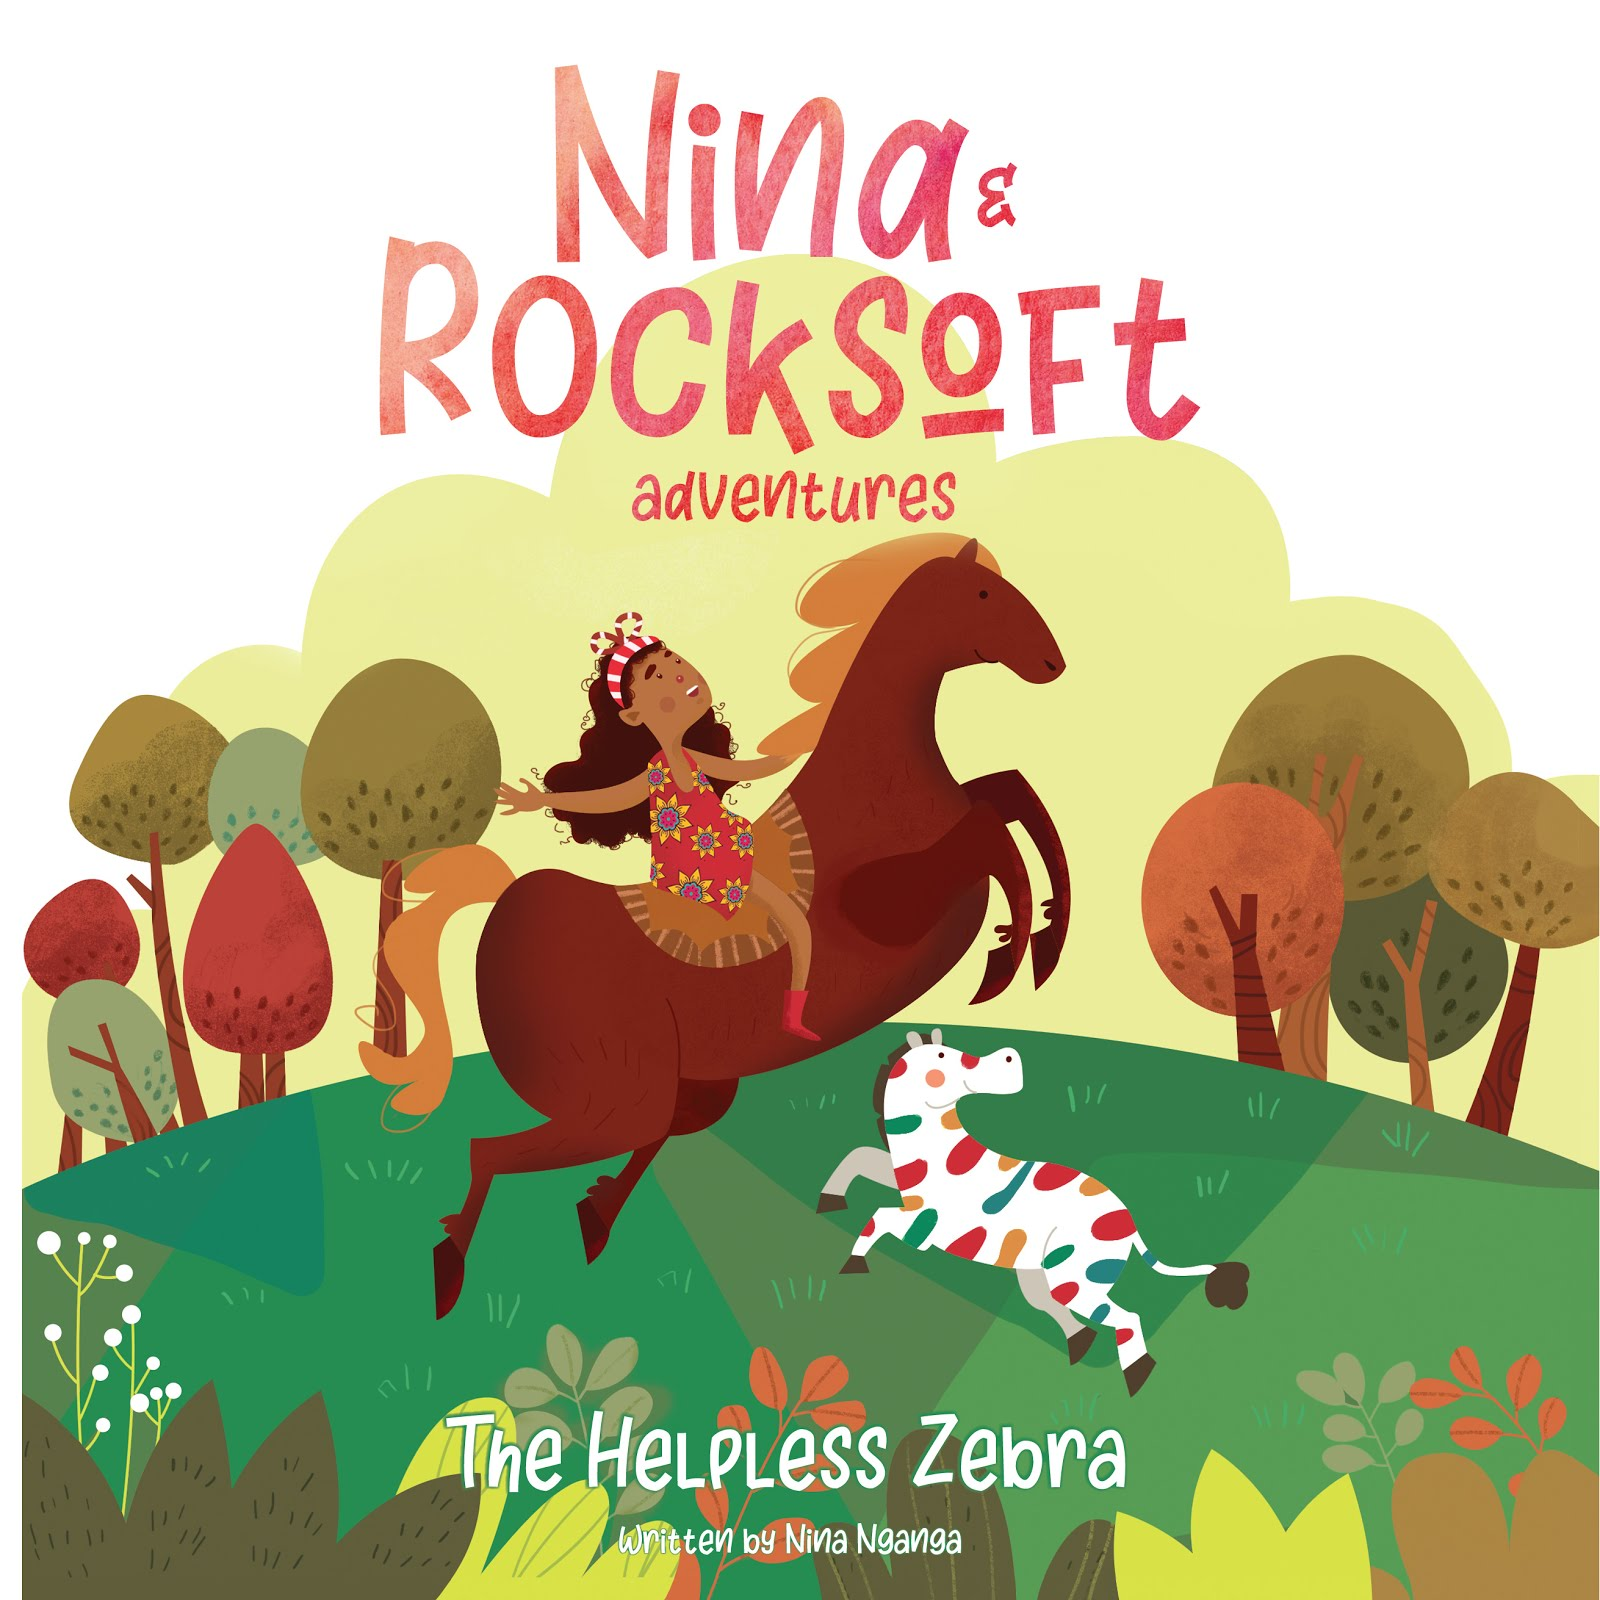 Nina and Rocksoft Adventures: The Helpless Zebra